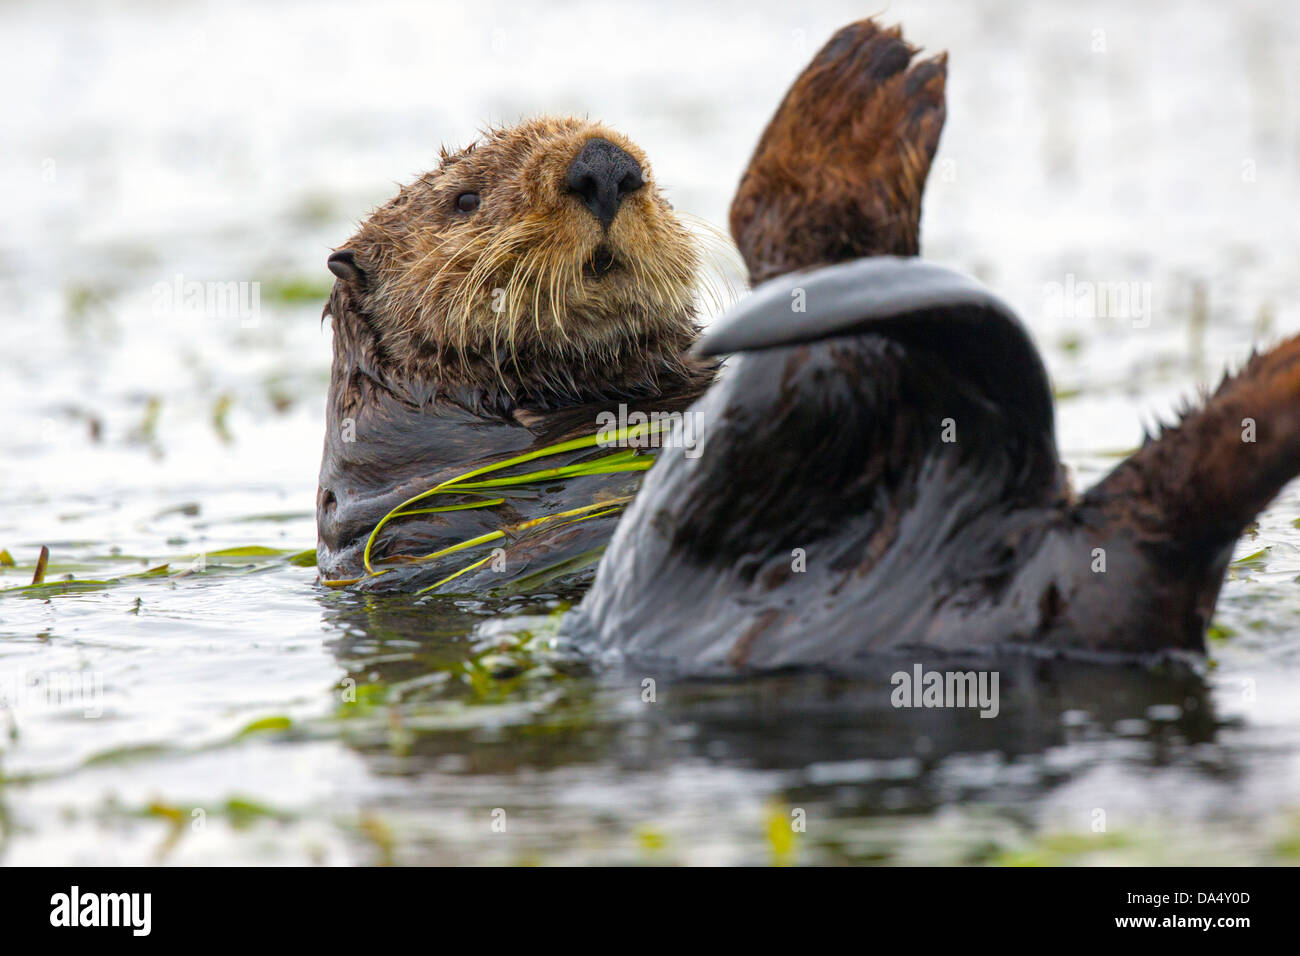 Sea Otter Enhydra lutris Moss Landing, California, United States 24 June Adult wrapped in Eel Grass. Mustelidae - Stock Image